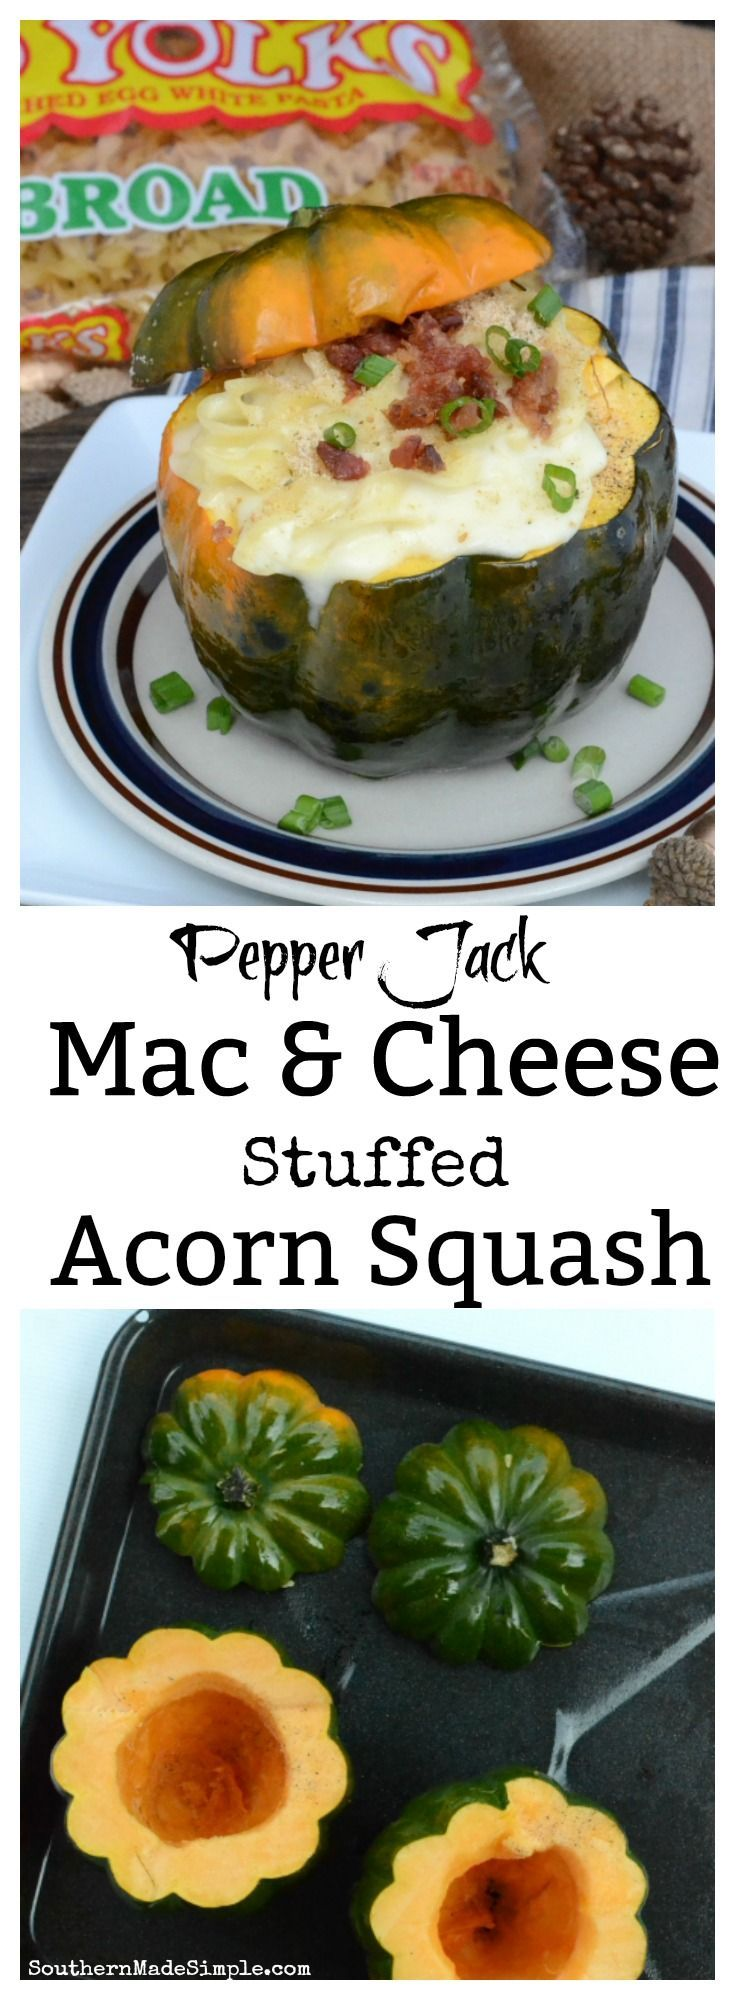 The fall season is in full swing, which means it's time to fall in love with this recipe for Pepper Jack Macaroni and Cheese Stuffed Acorn Squash! The nutty flavor of the squash paired with the creamy cheese sauce and perfectly cooked noodles makes this dish a mouthwatering treat! #ad #NoYolks #NoOtherNoodle #MC